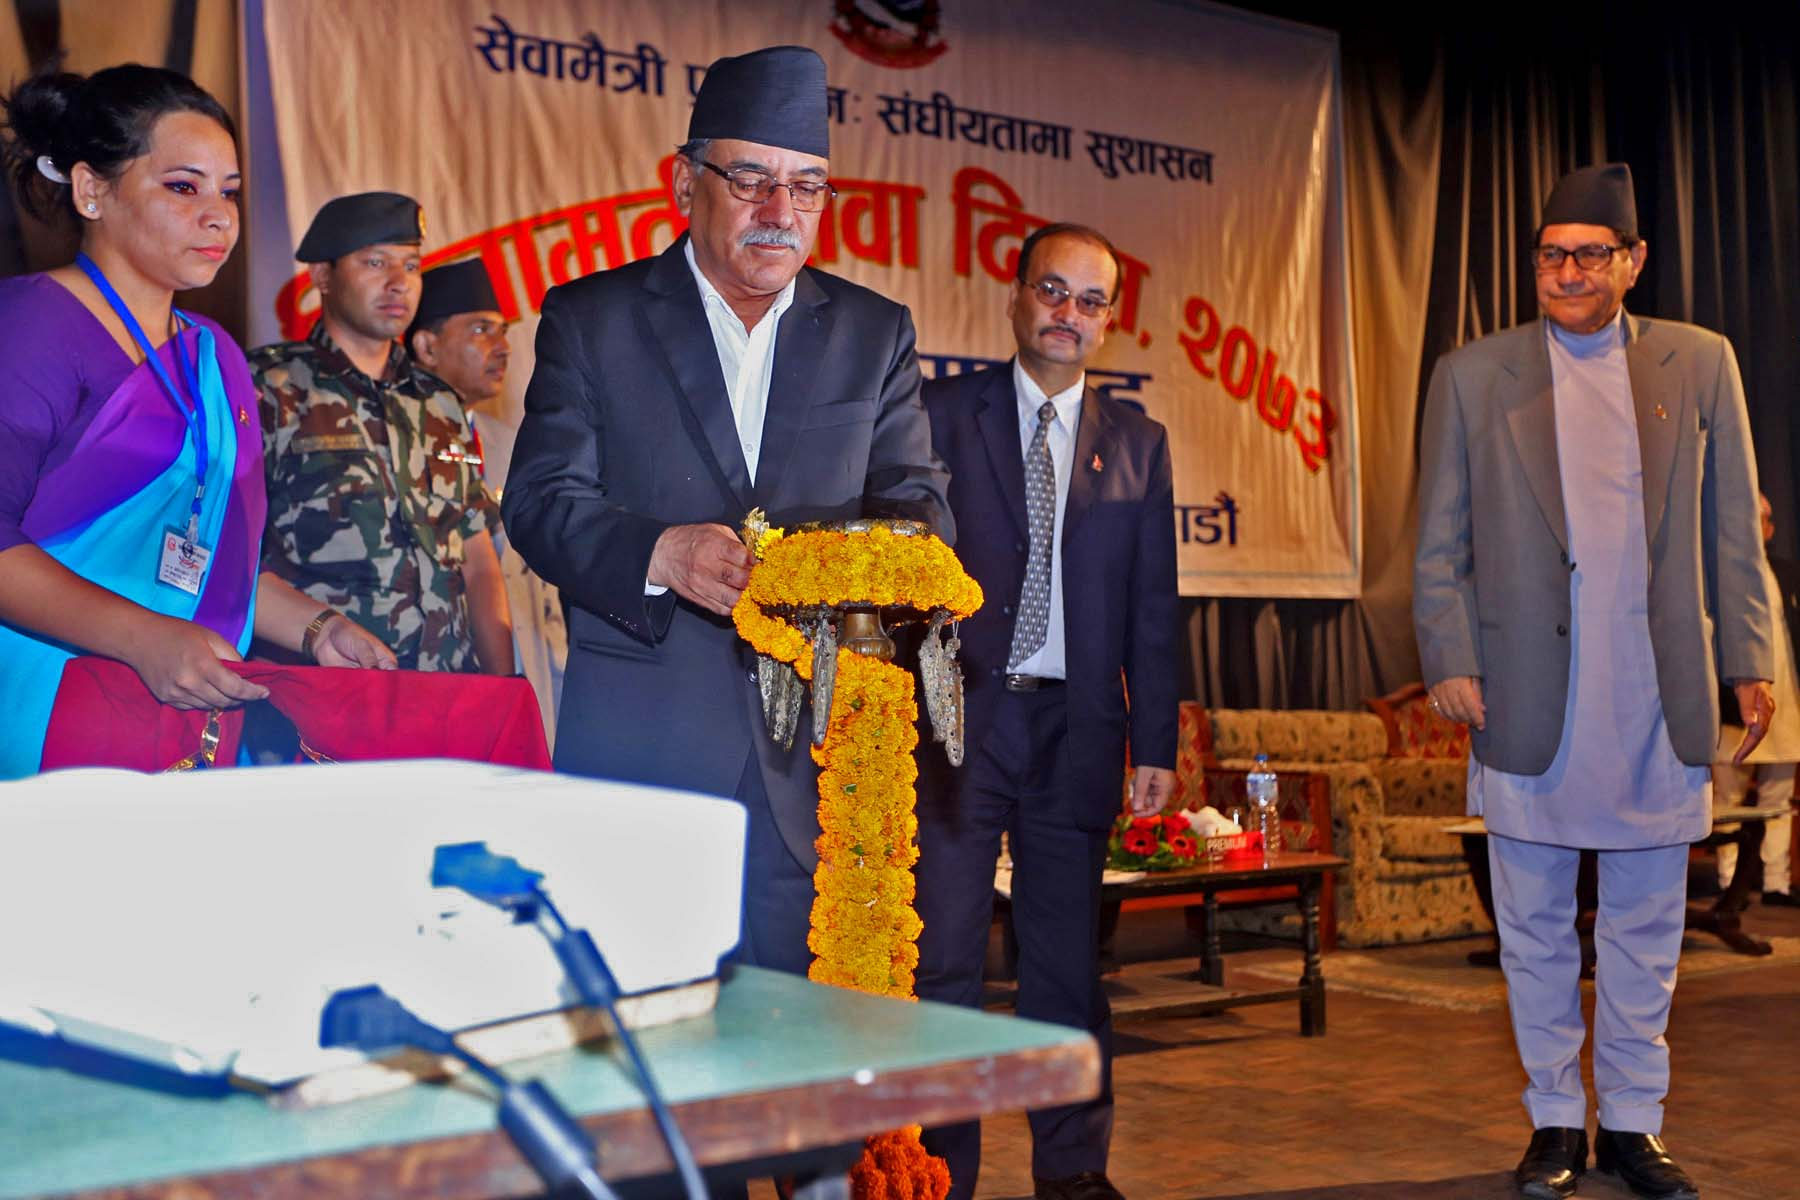 Prime Minister Pushpa Kamal Dahal inaugurates a programme organised on the occasion of Civil Service Day, in Kathmandu, on Wednesday, September 7, 2016. Photo: RSS